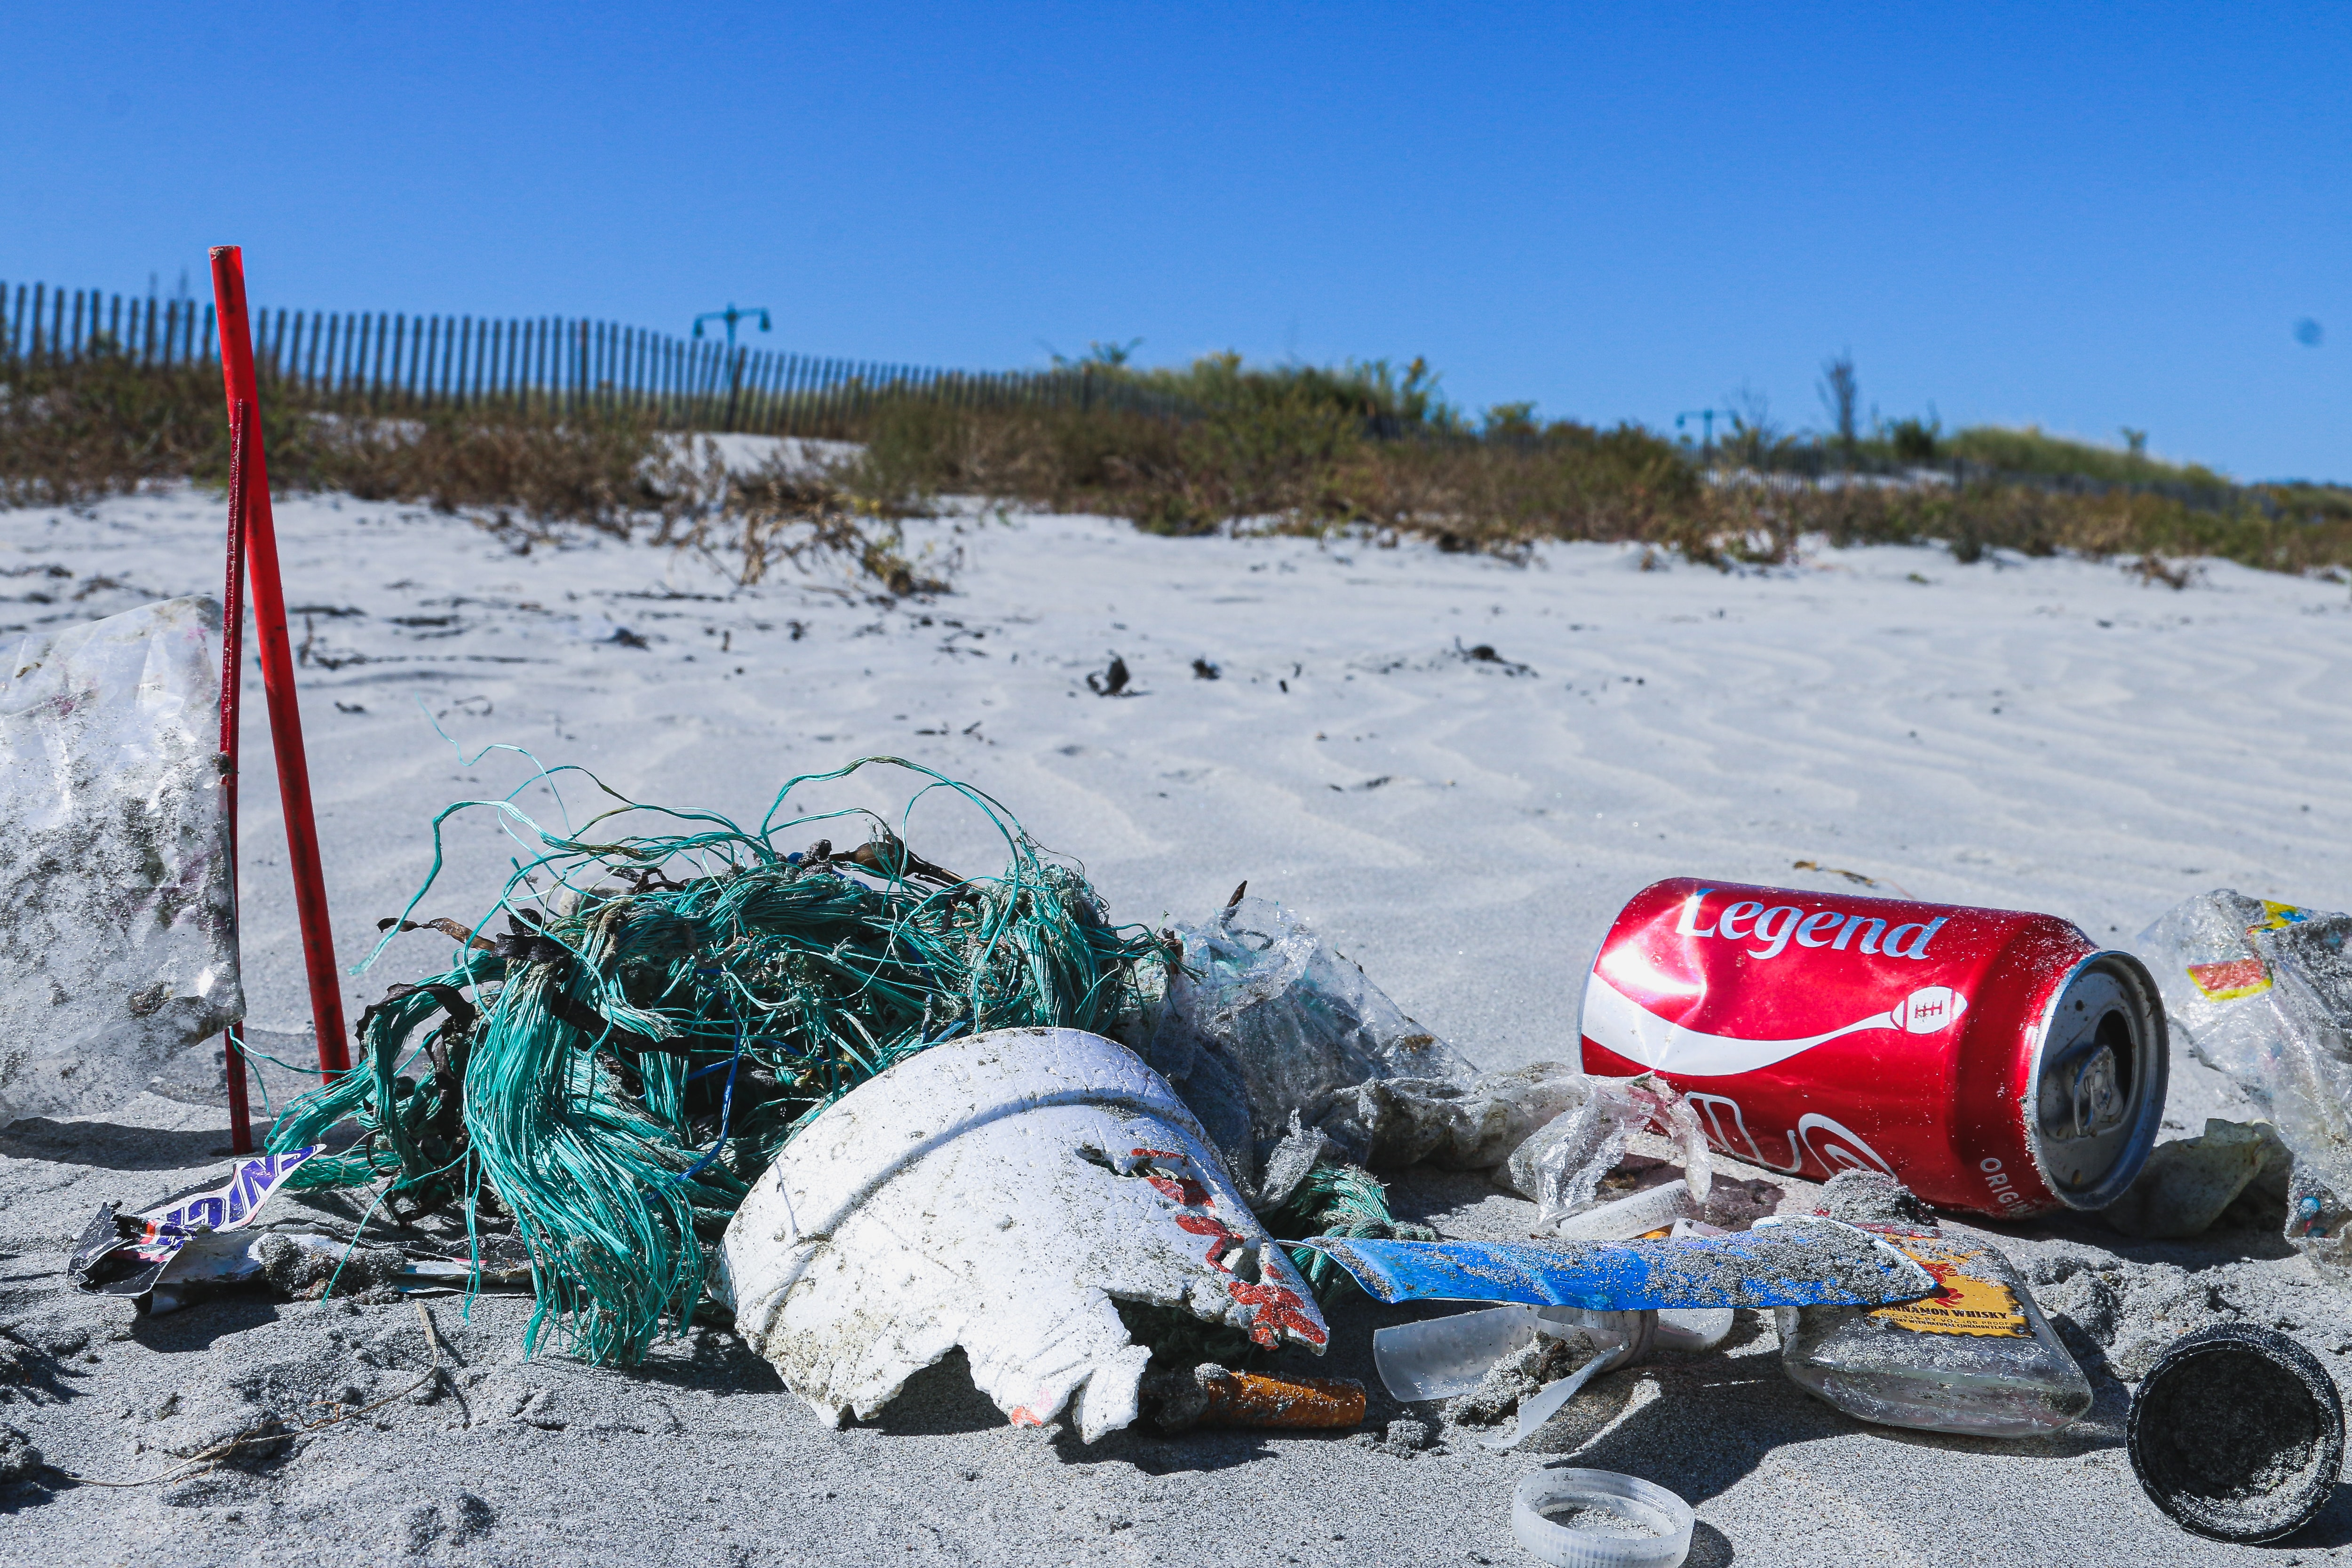 BLOG: Cutting out plastic - where to begin